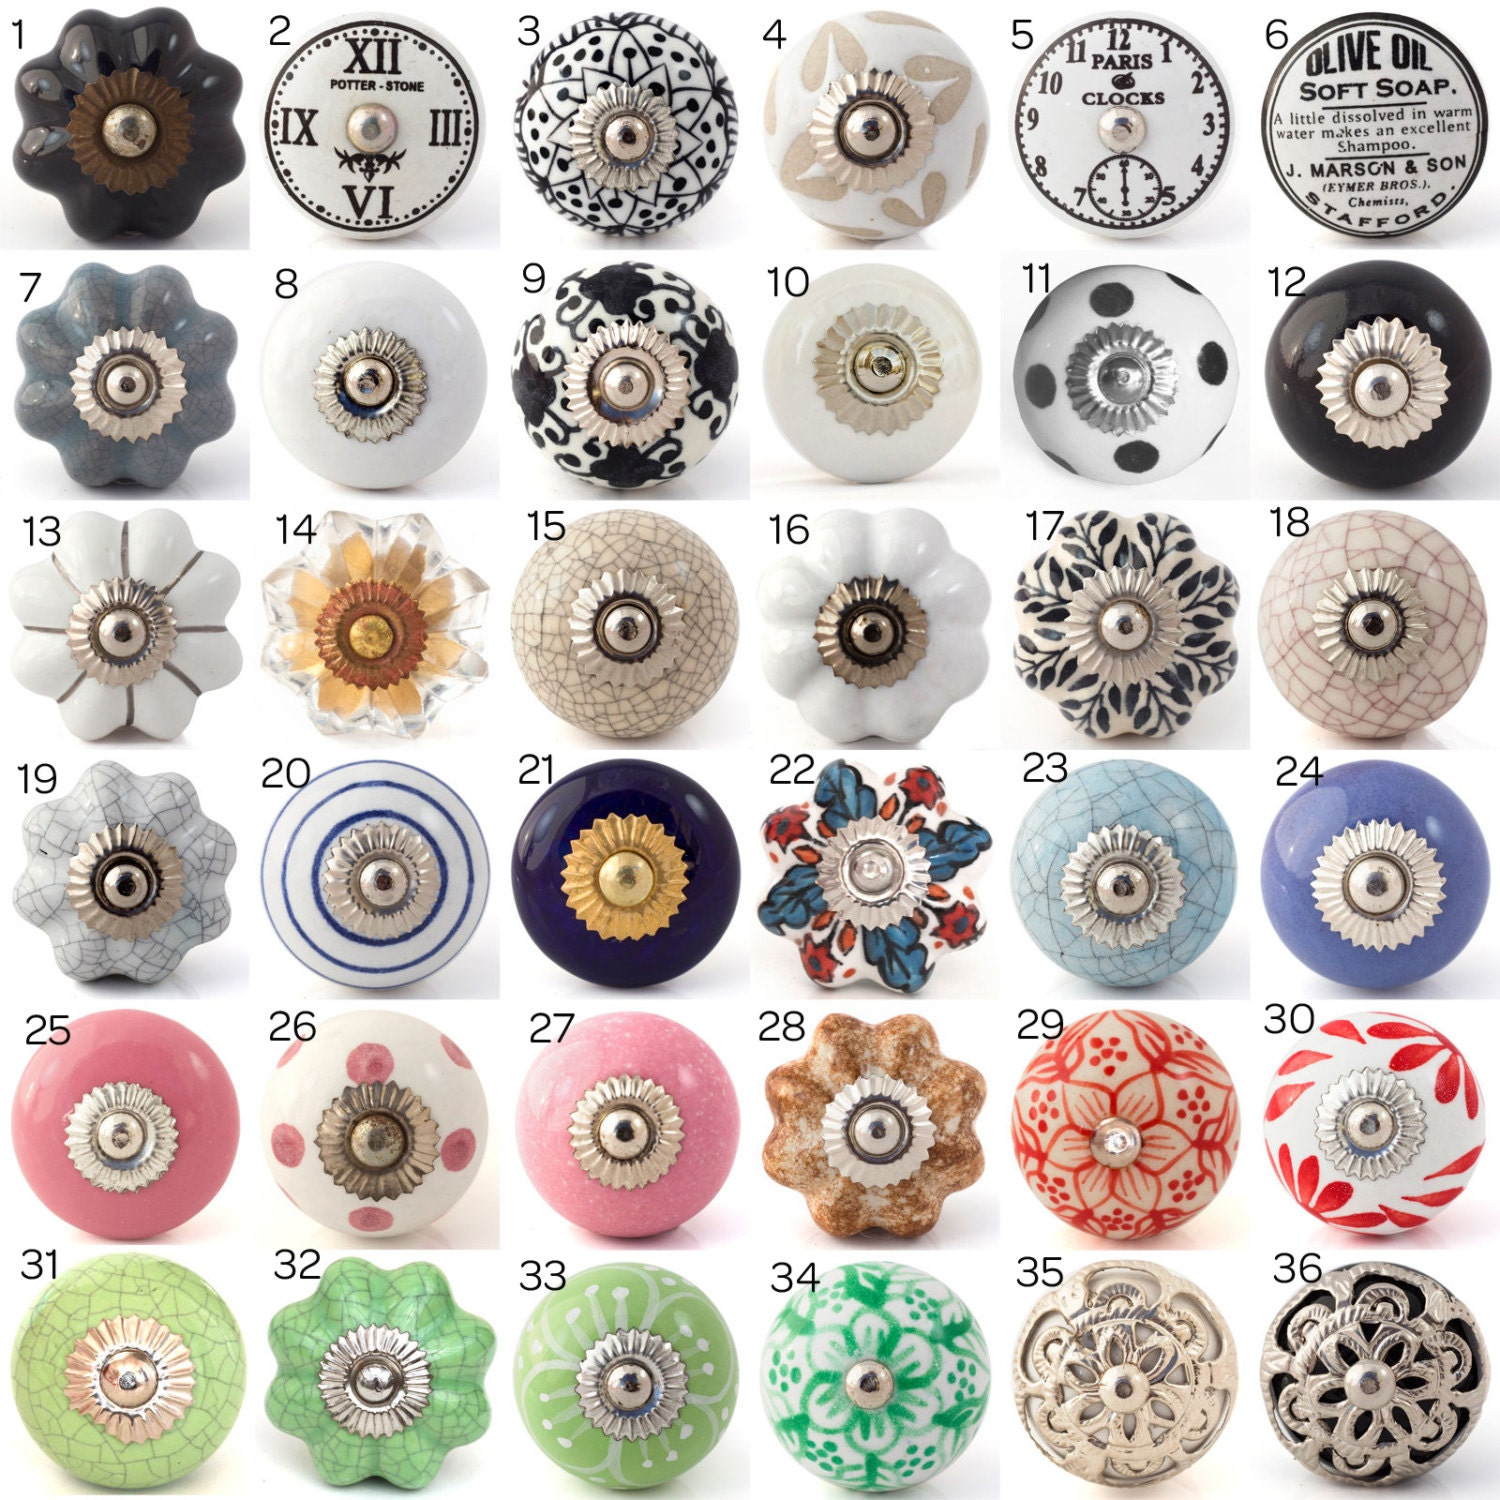 Ceramic Porcelain Door Knobs Various Multi Coloured Designs